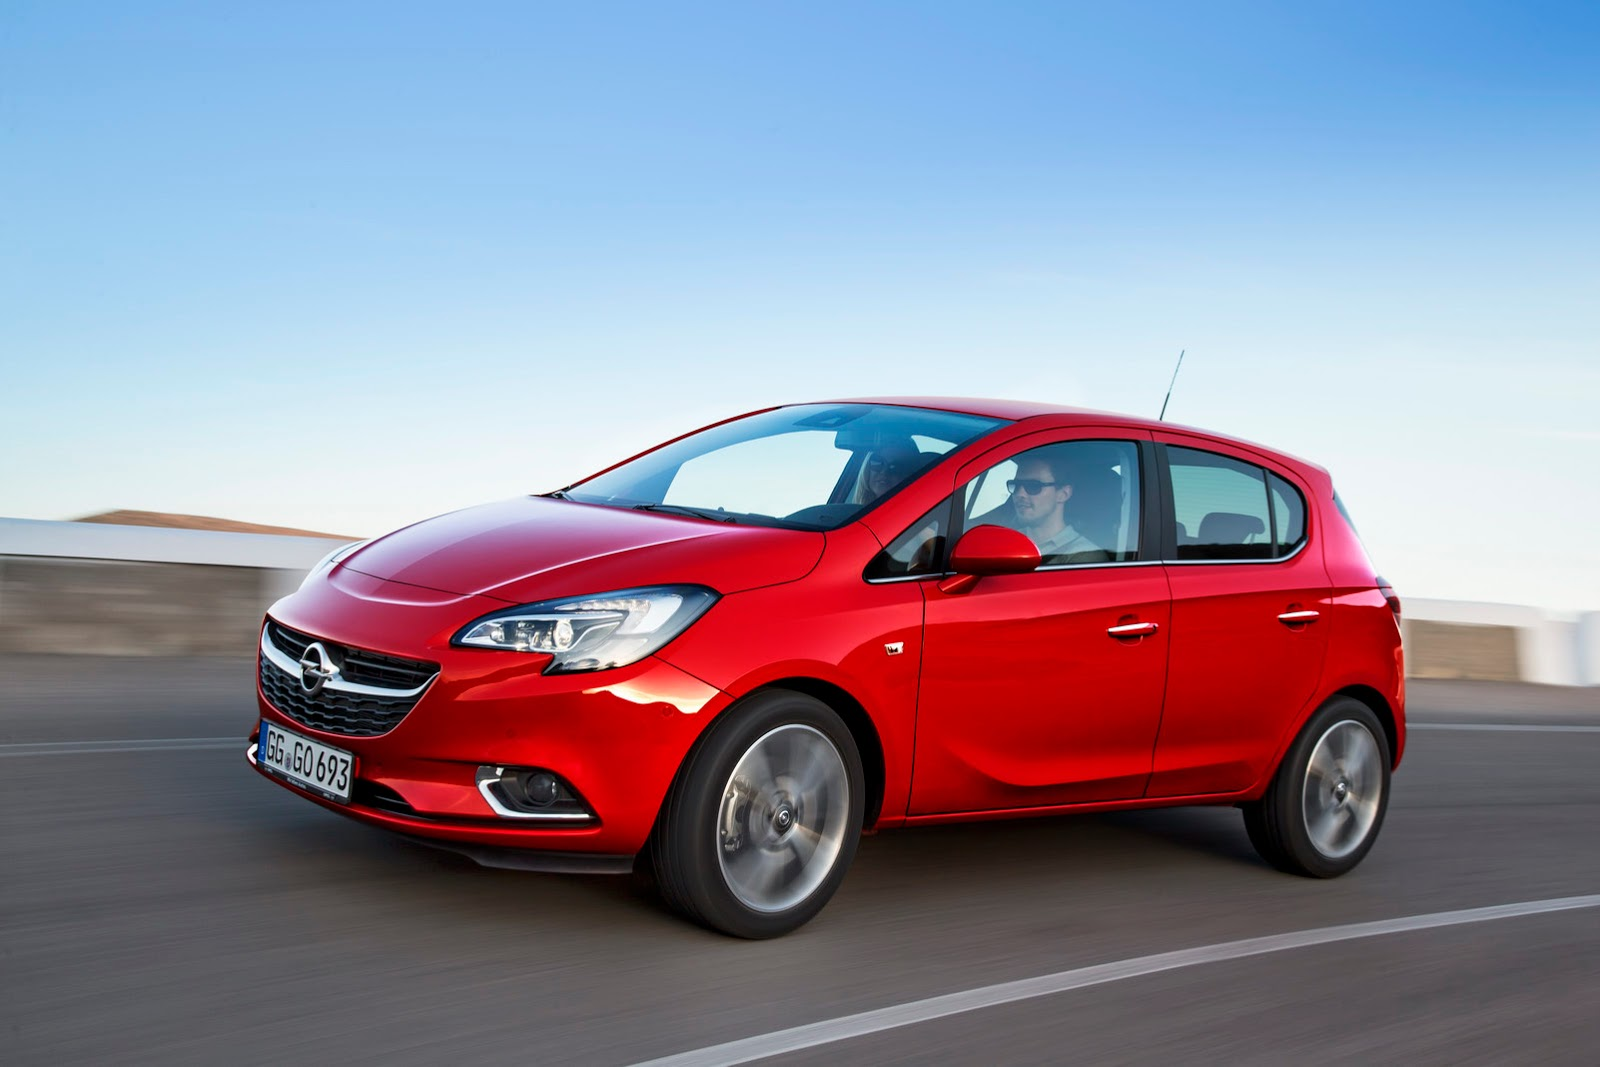 new opel vauxhall corsa revealed with adam inspired design autoevolution. Black Bedroom Furniture Sets. Home Design Ideas